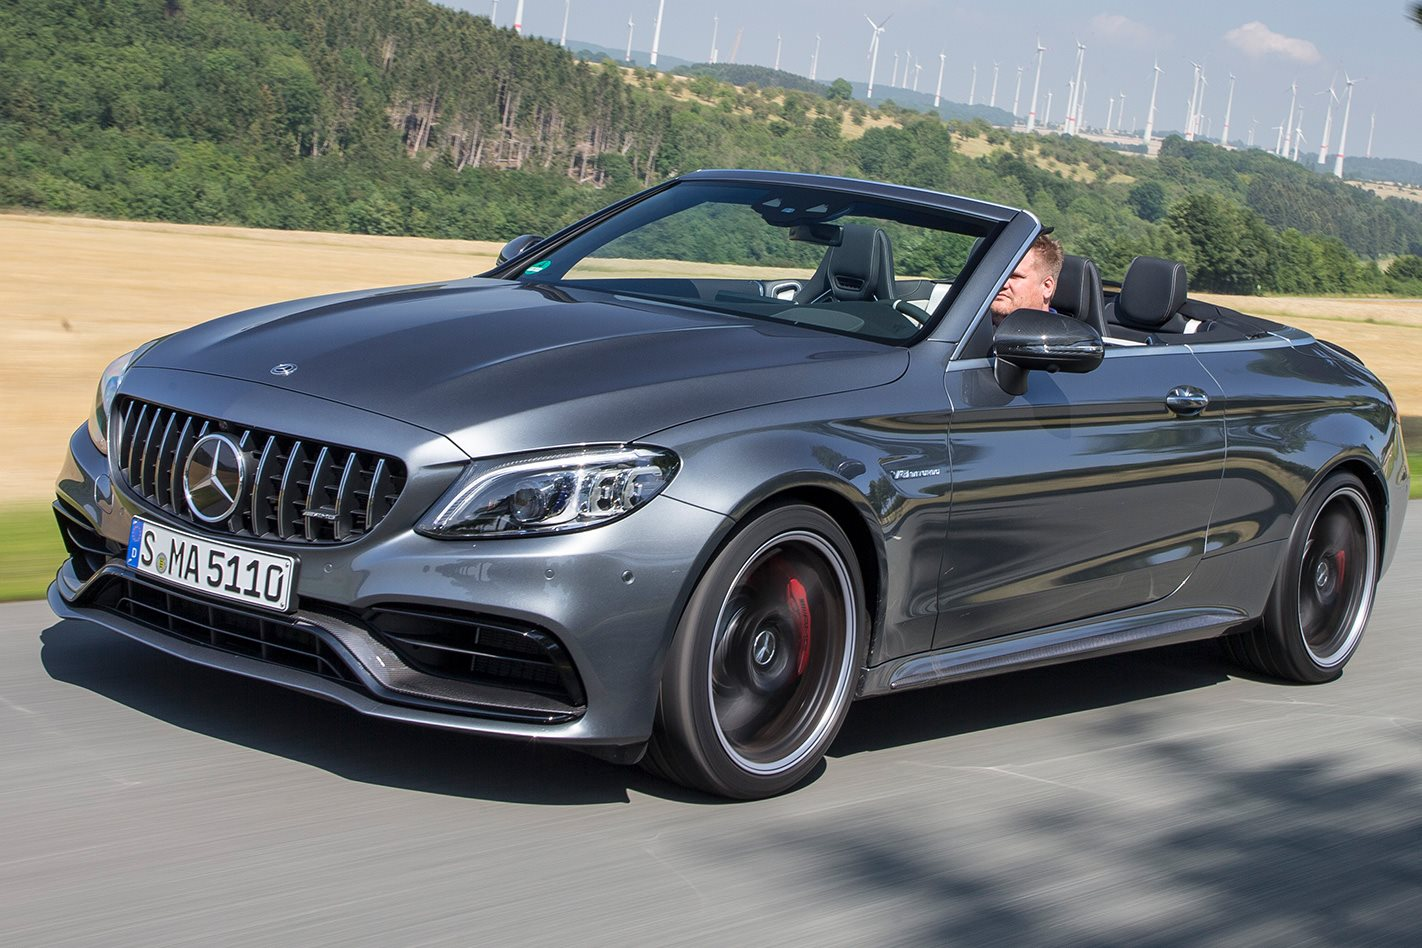 2019 Mercedes-AMG C63 S Cabriolet review